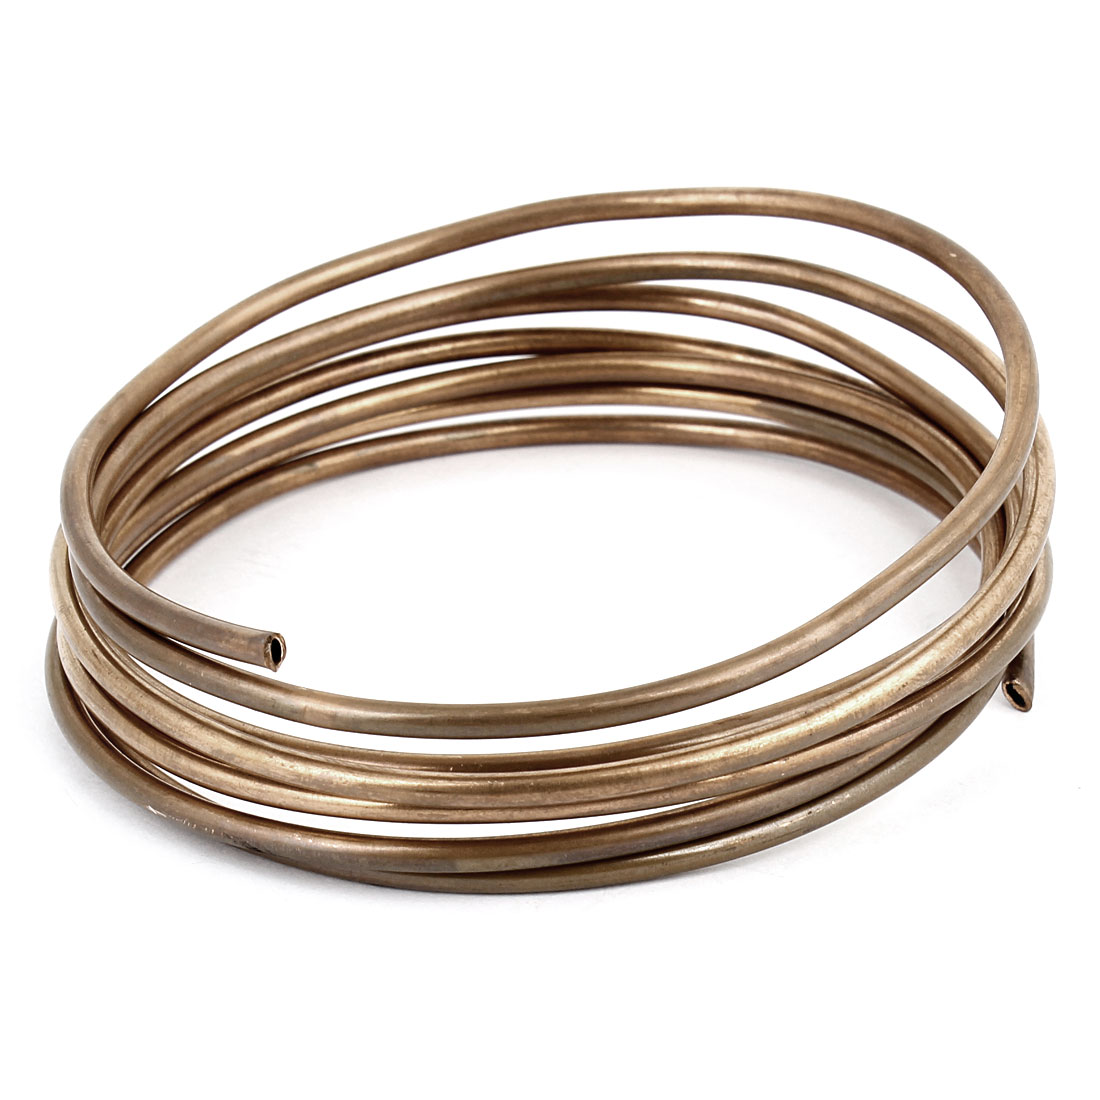 3.0mm Dia 1.8M 6Ft Length Copper Tone Refrigerator Refrigeration Tubing Coil